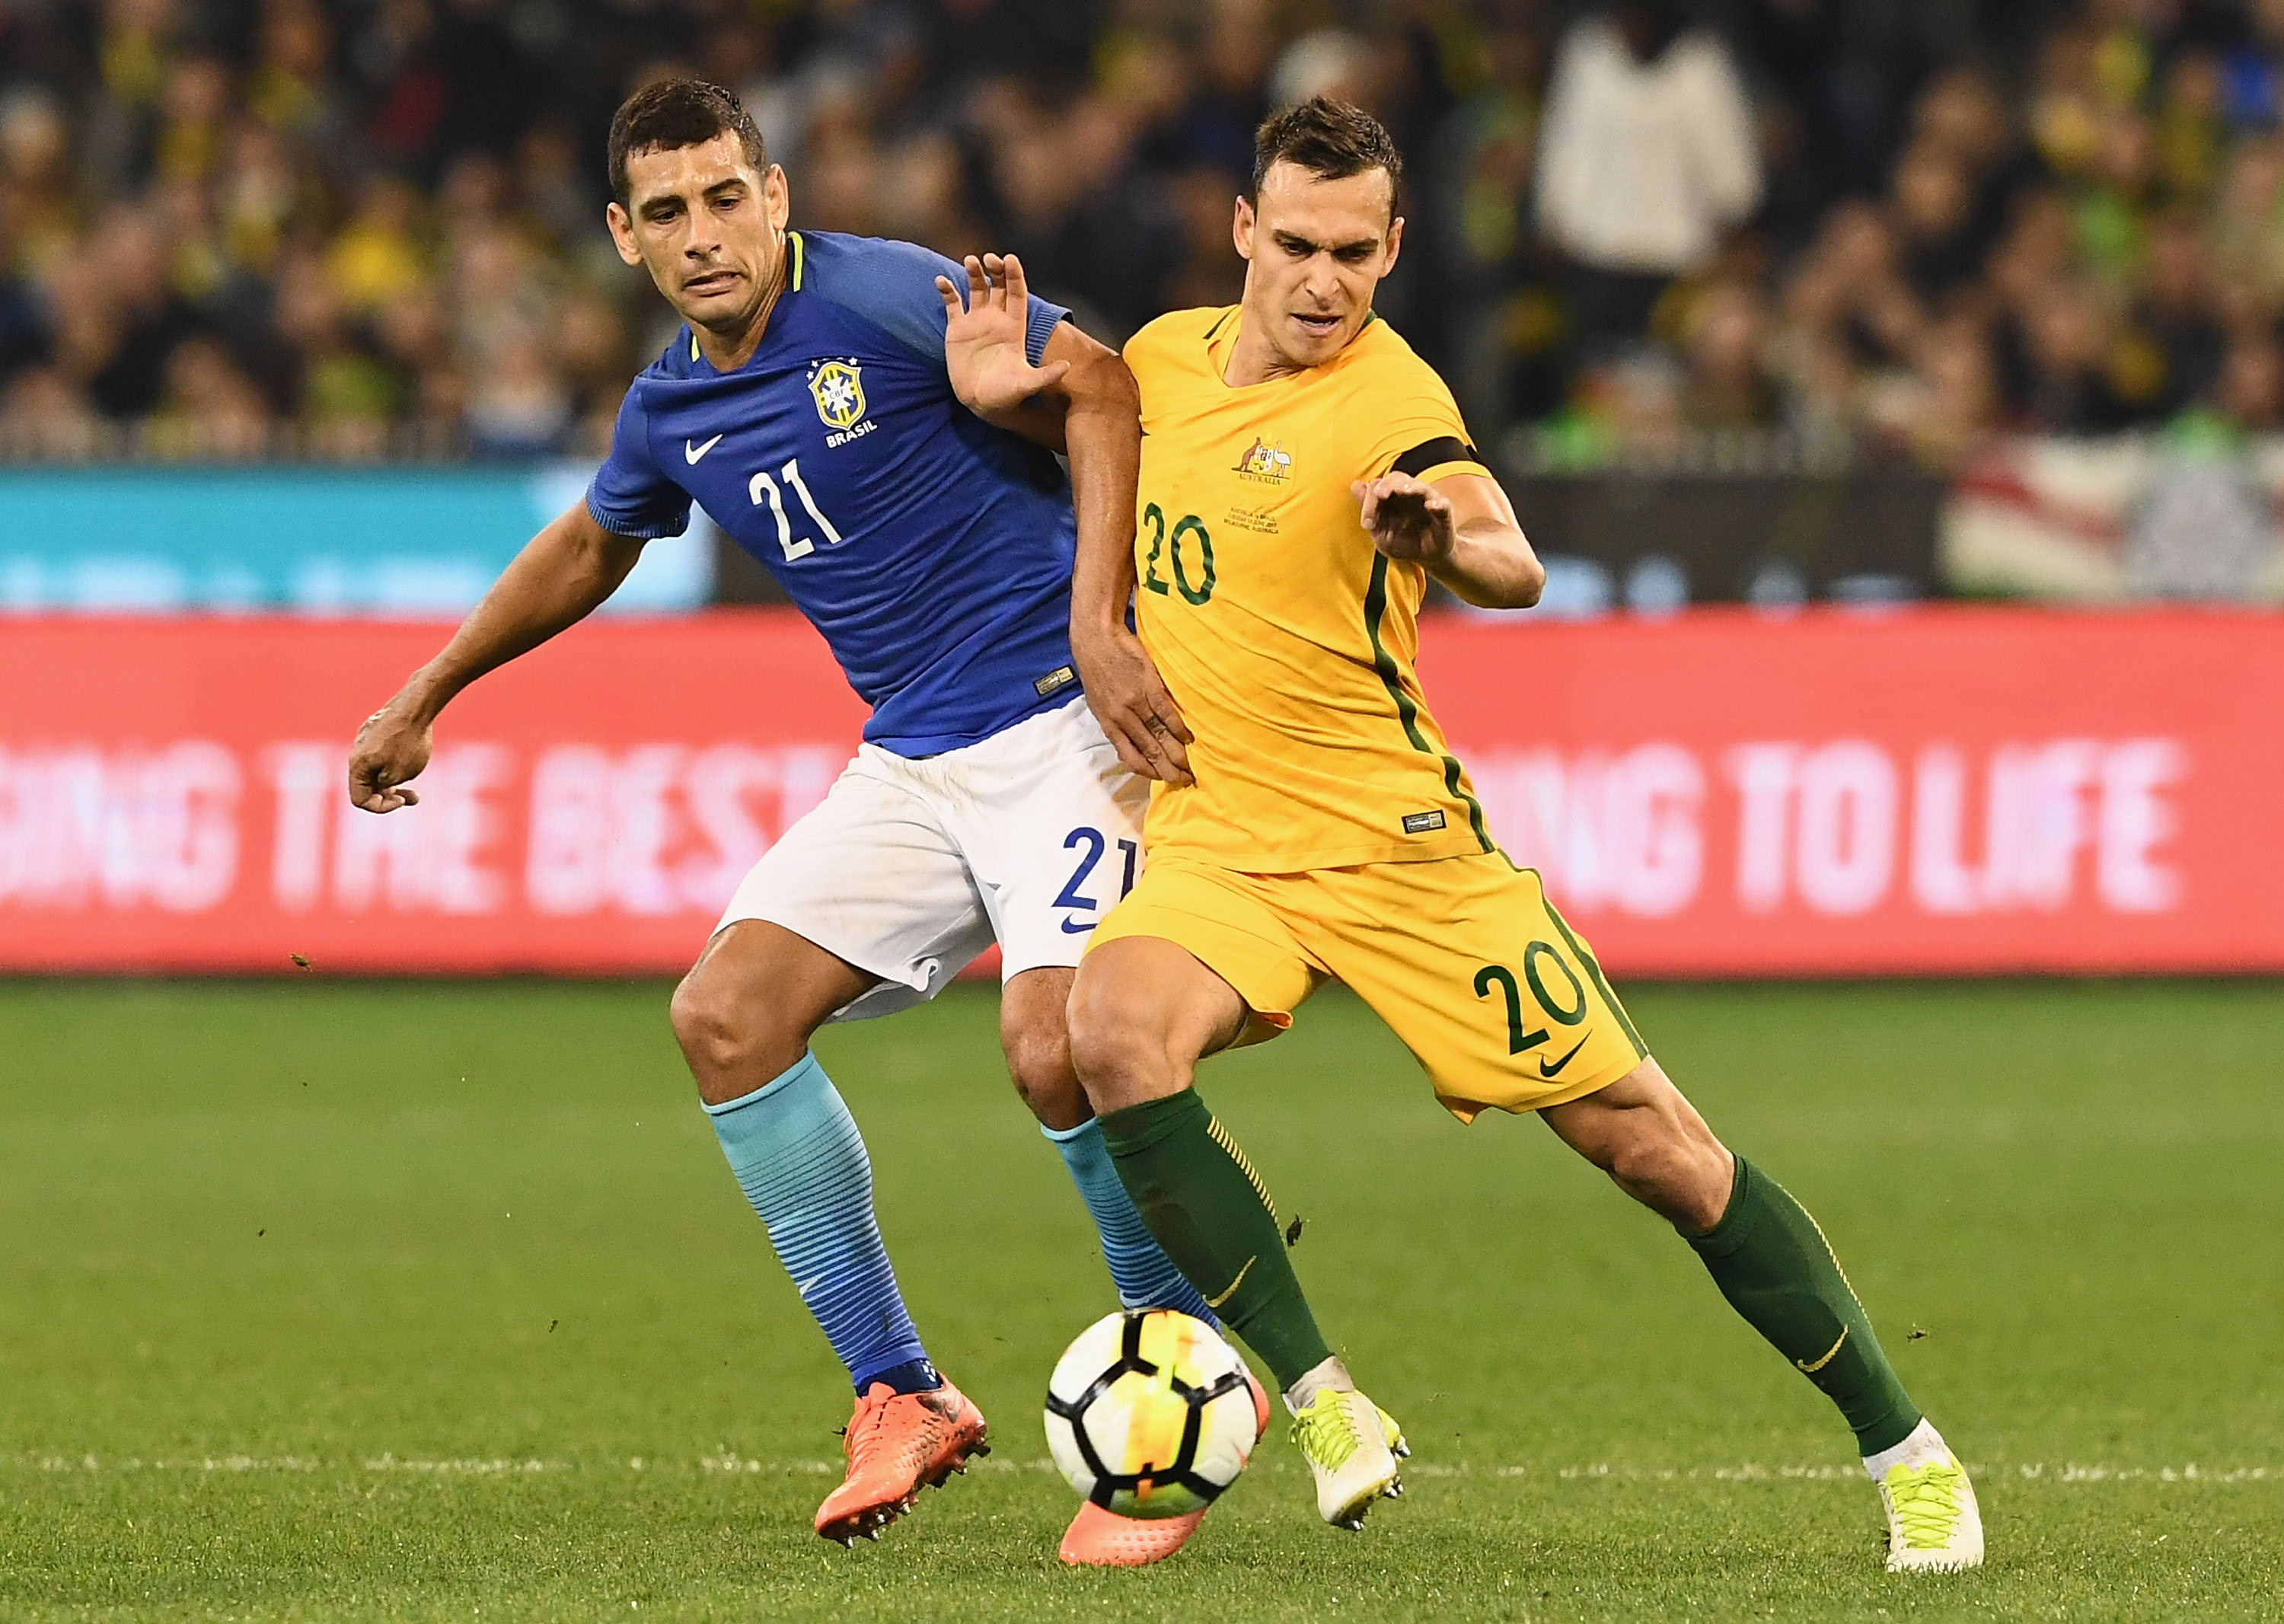 Trent Sainsbury was working hard to keep it tight at the back as the sides went to the break with Brazil leading 1-0.